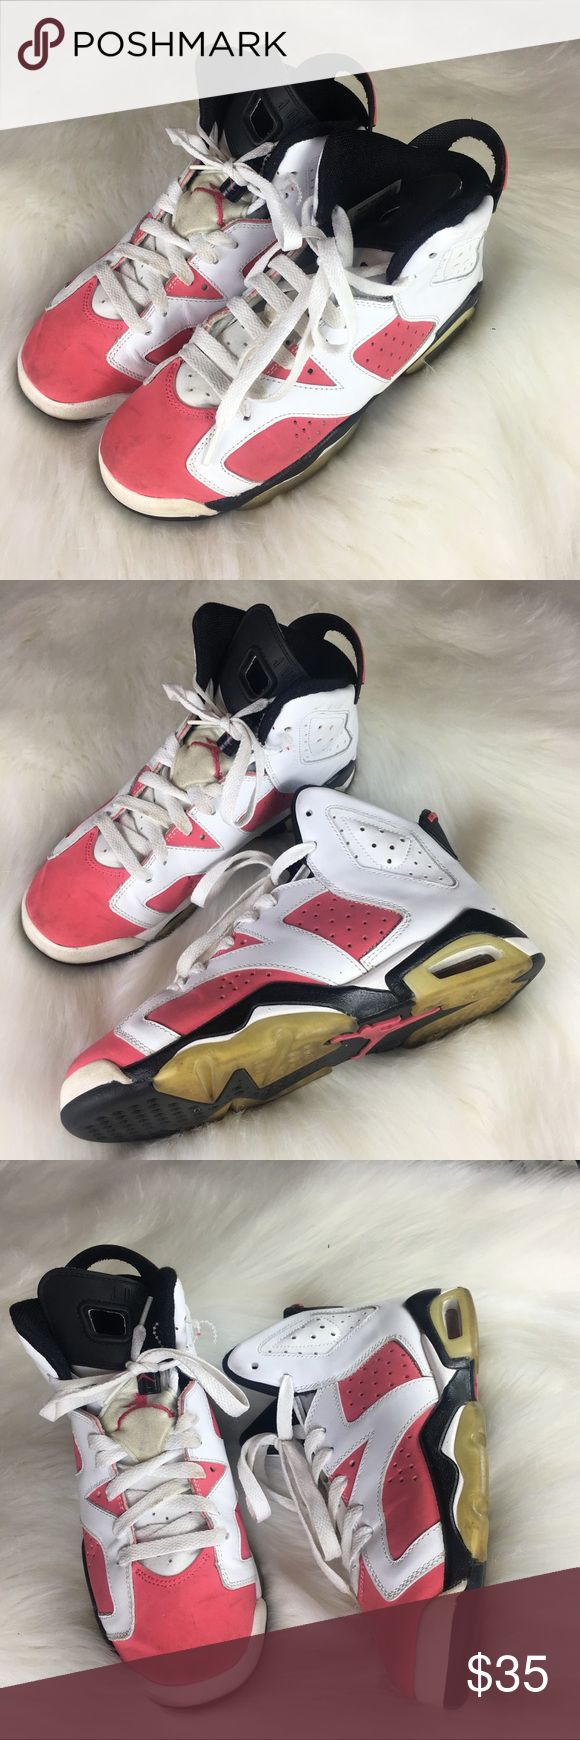 Nike Jordan VI GS White Coral Rose Size 5 Preloved Nike Jordan VI GS White and Coral Rose. Size 5Y. Signs of wear evident.   If you want it, make an offer ✅ I need to make room for new items so I love to negotiate. Bundle multiple items for the best savings. Pay one price of shipping 📦! Thanks for visiting Jordan Shoes Sneakers